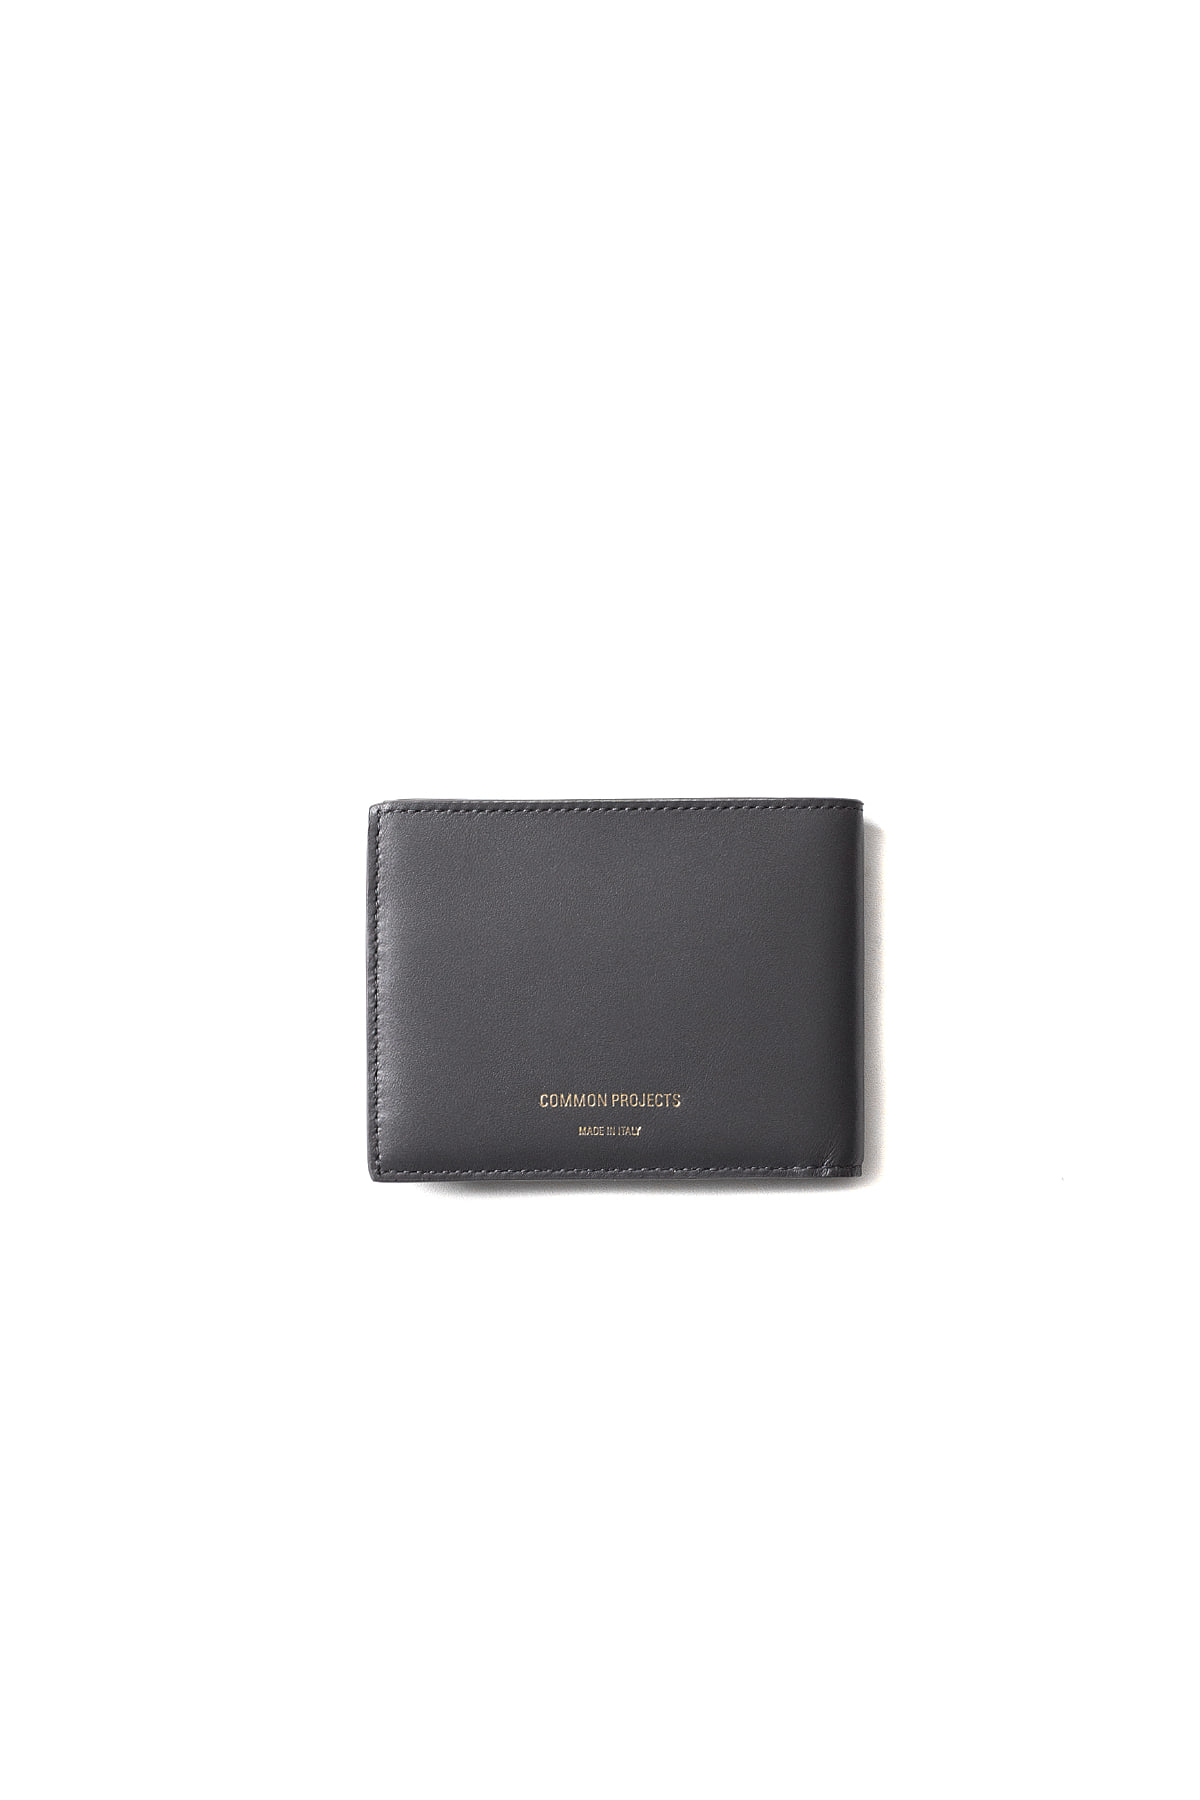 Common Projects : Standard Wallet 6CC (Blue Grey)